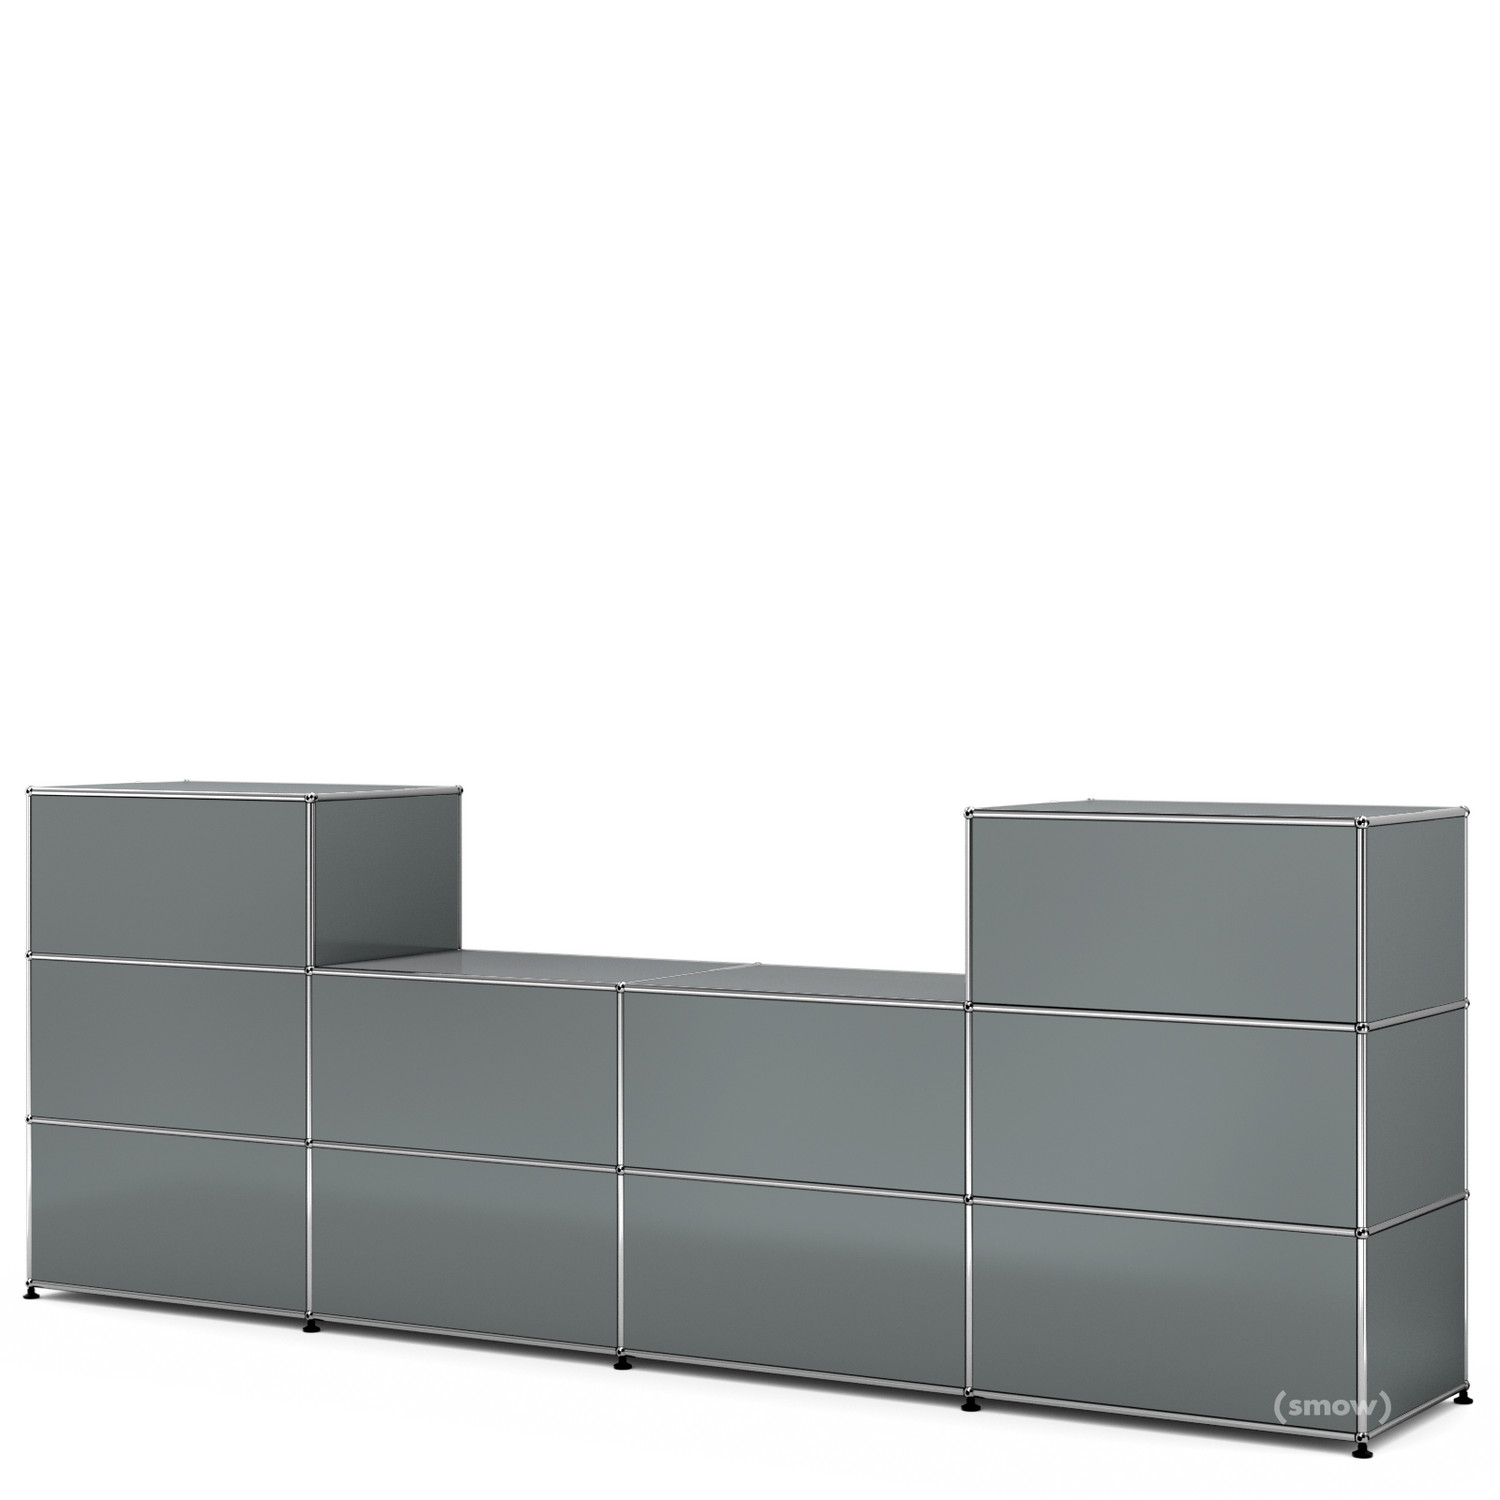 usm haller theke typ 3 mittelgrau ral 7005 50 cm von. Black Bedroom Furniture Sets. Home Design Ideas